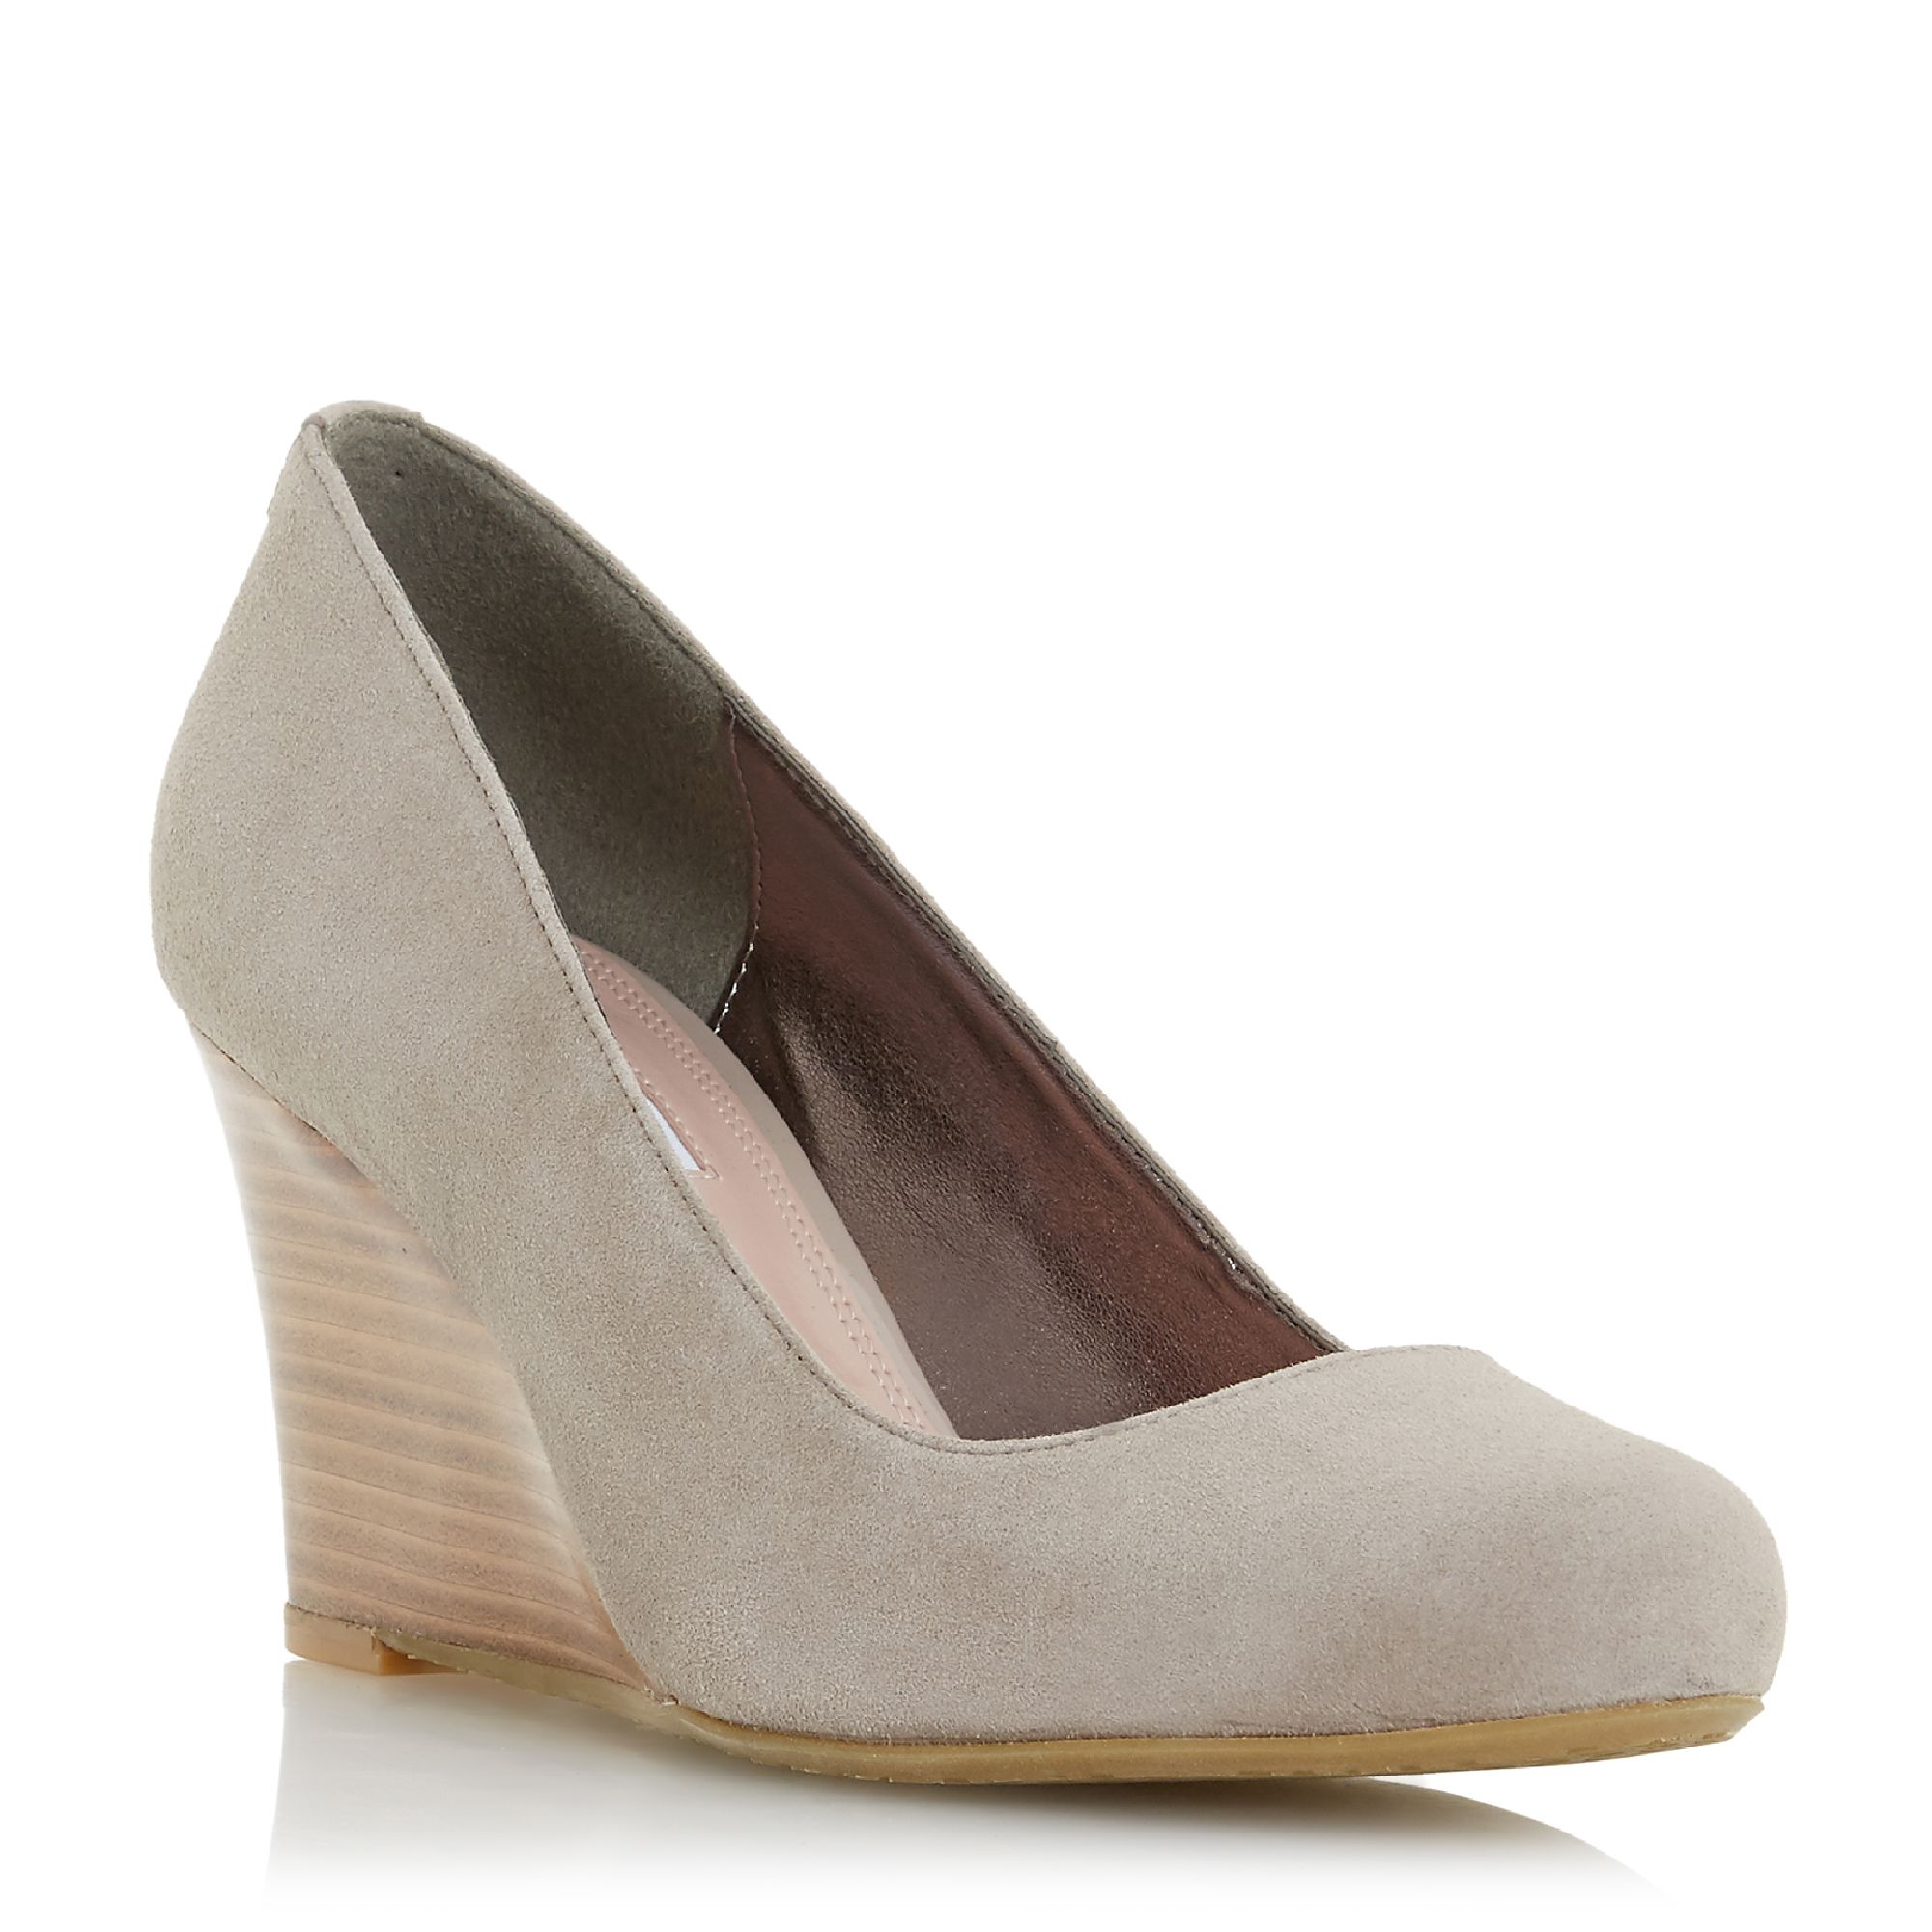 Dune Alixxe  Stacked Wedge Heel Court Shoes, Taupe